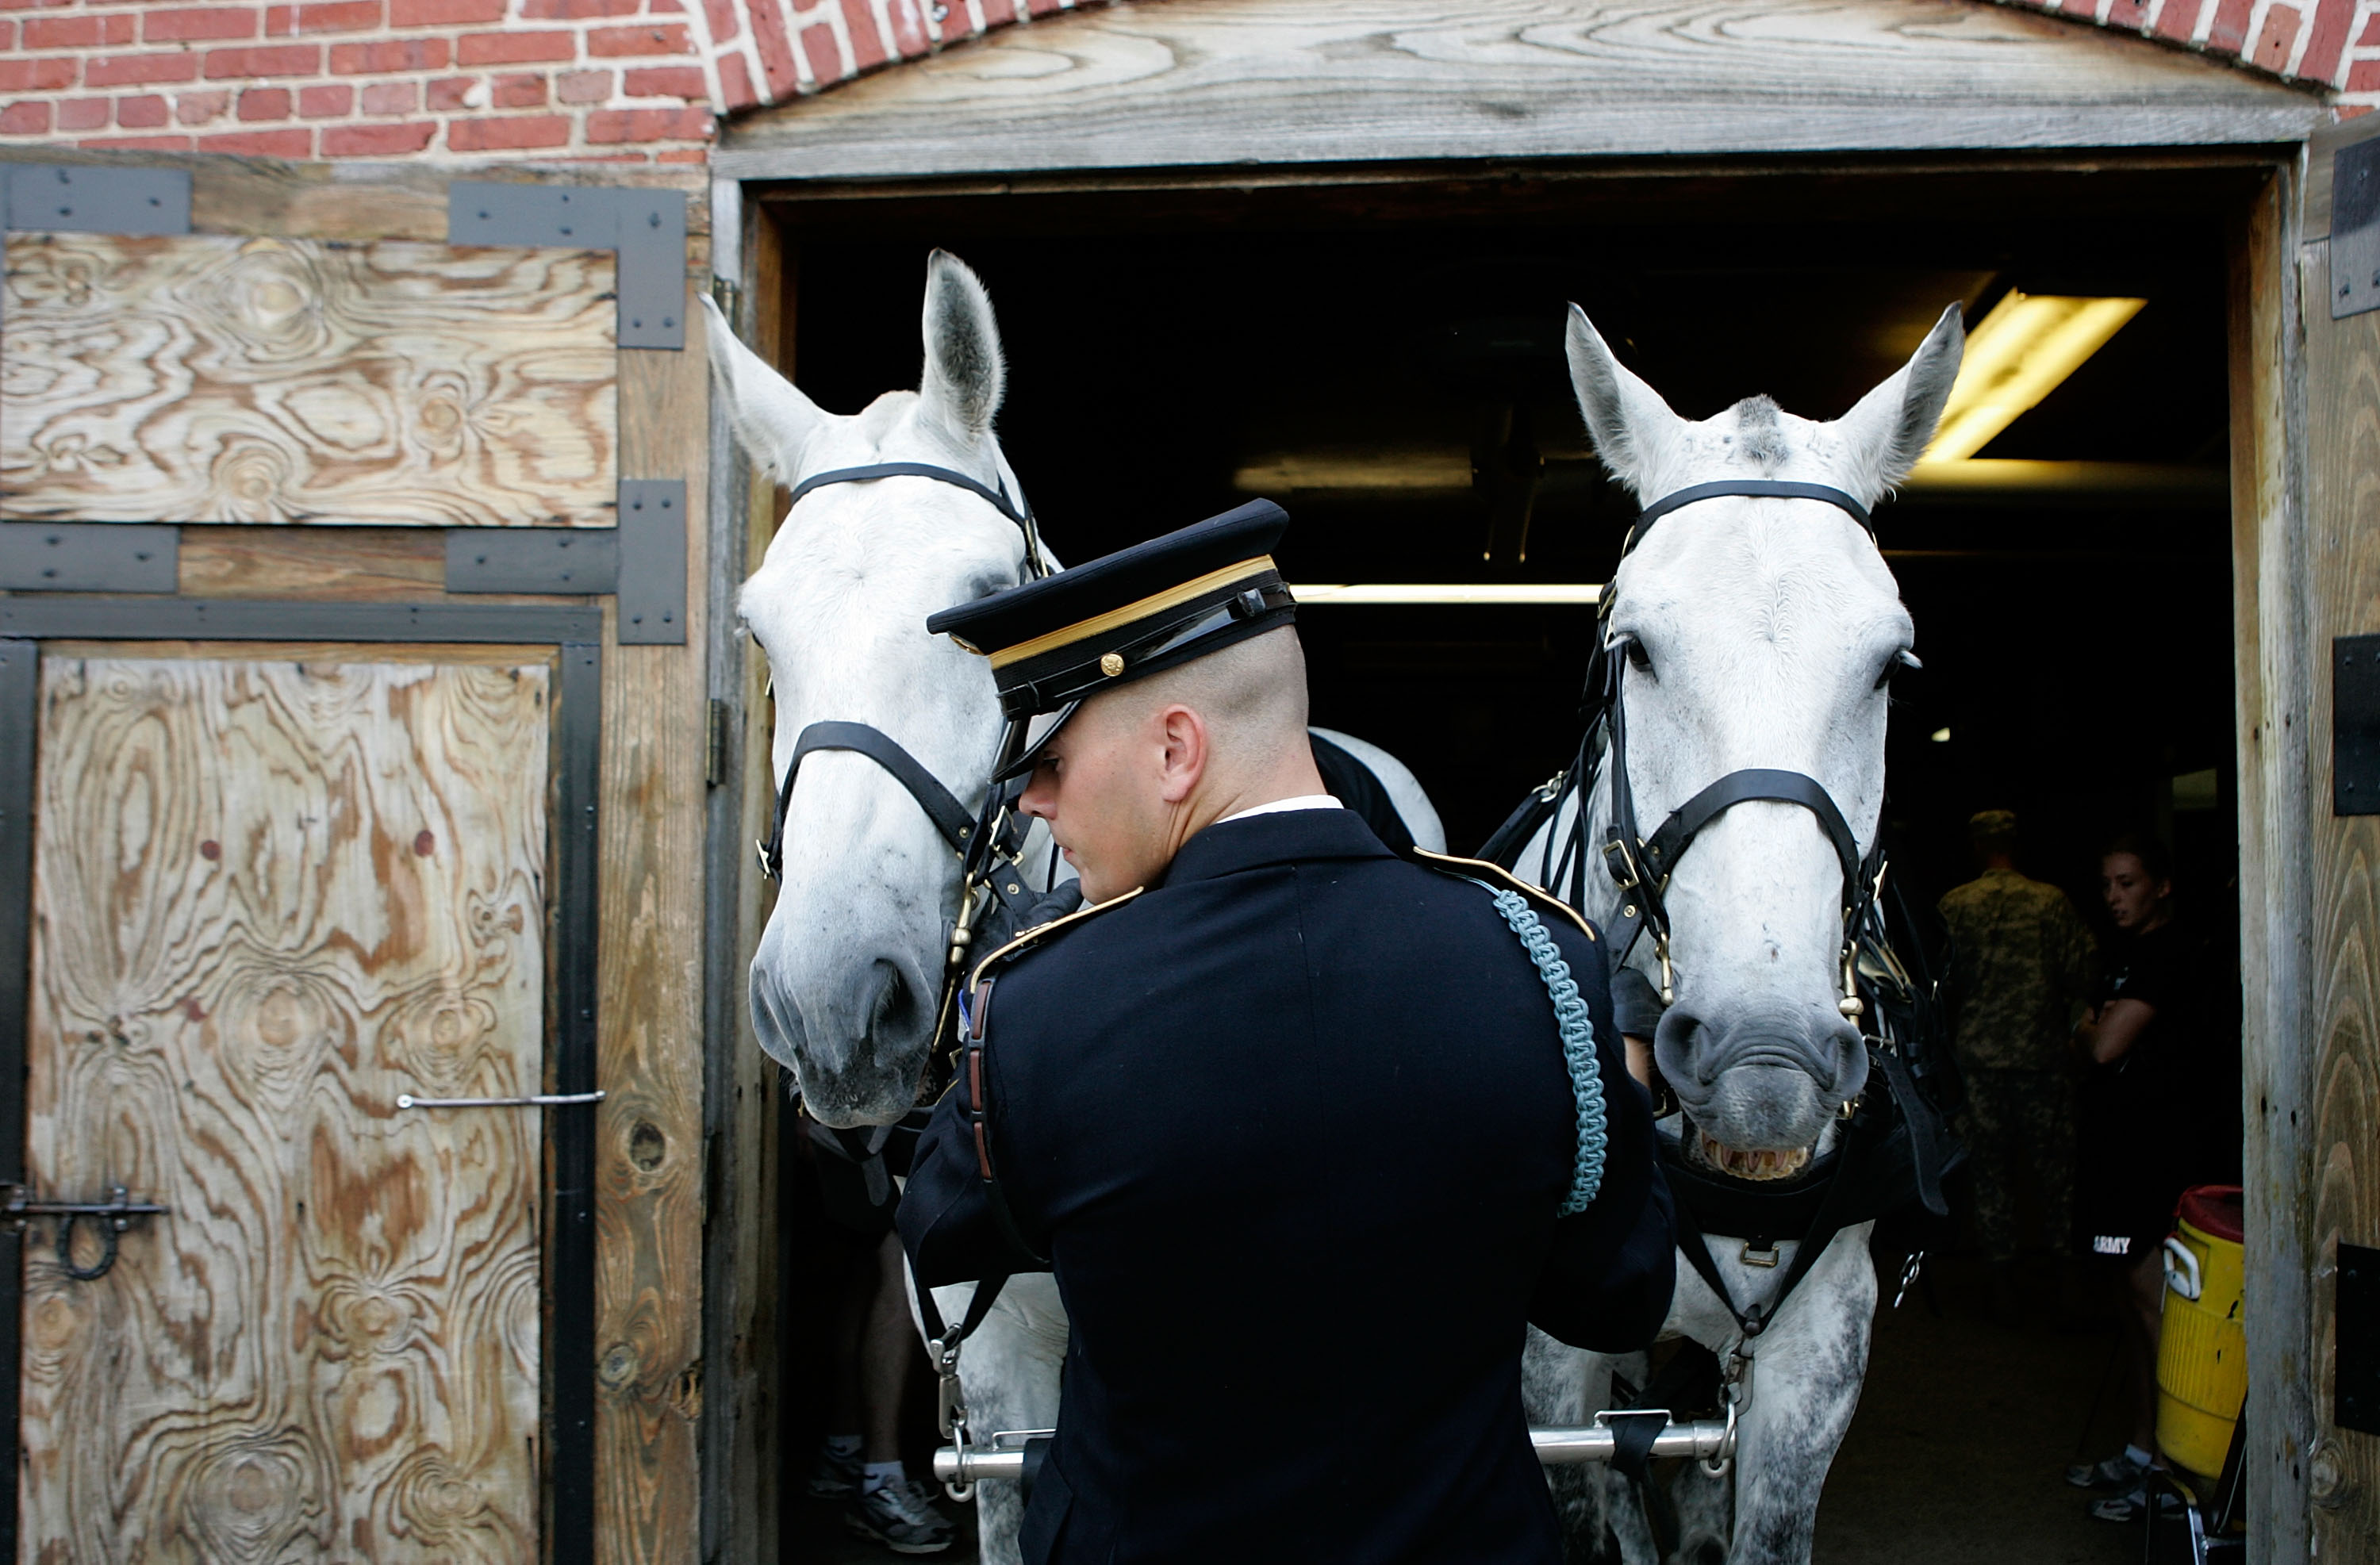 Horses  Sam  (R) and  Sarge  are walked out of the stable by Spl. John Thomas of the U.S. Army 3rd Infantry Regiment  Old Guard  Caisson Platoon at Ft. Myer, before being hooked to a Caisson for funerals at Arlington Cemetery, Va., June 18, 2007.